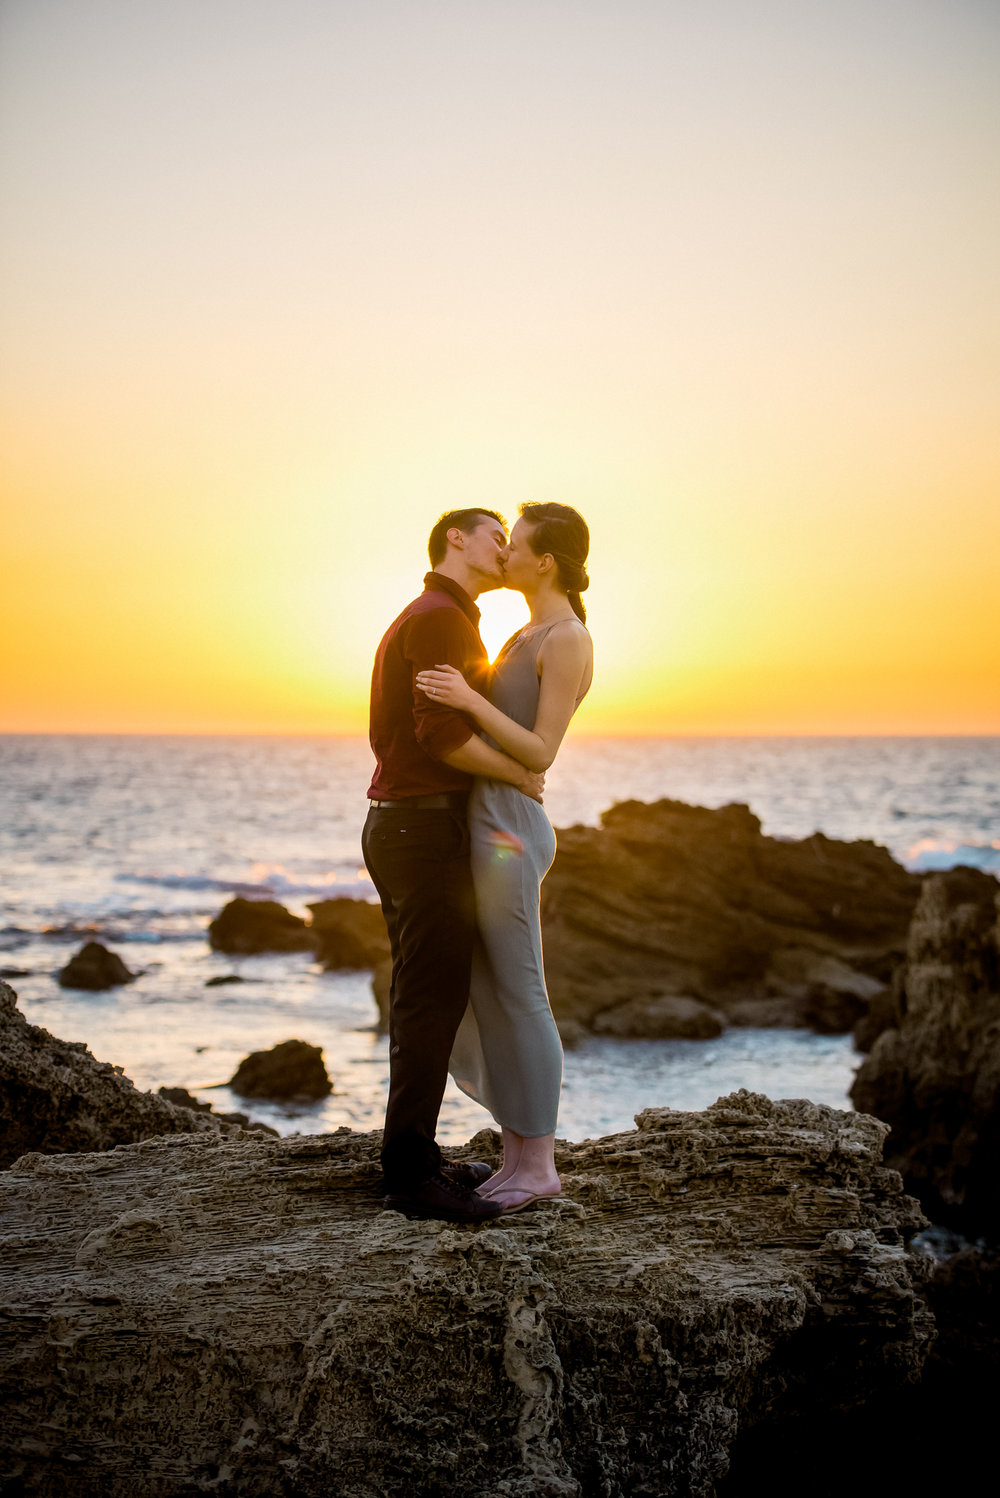 Cliffside-beach-engagement-session-hadera-israel-kate-giryes-photography-9451.jpg